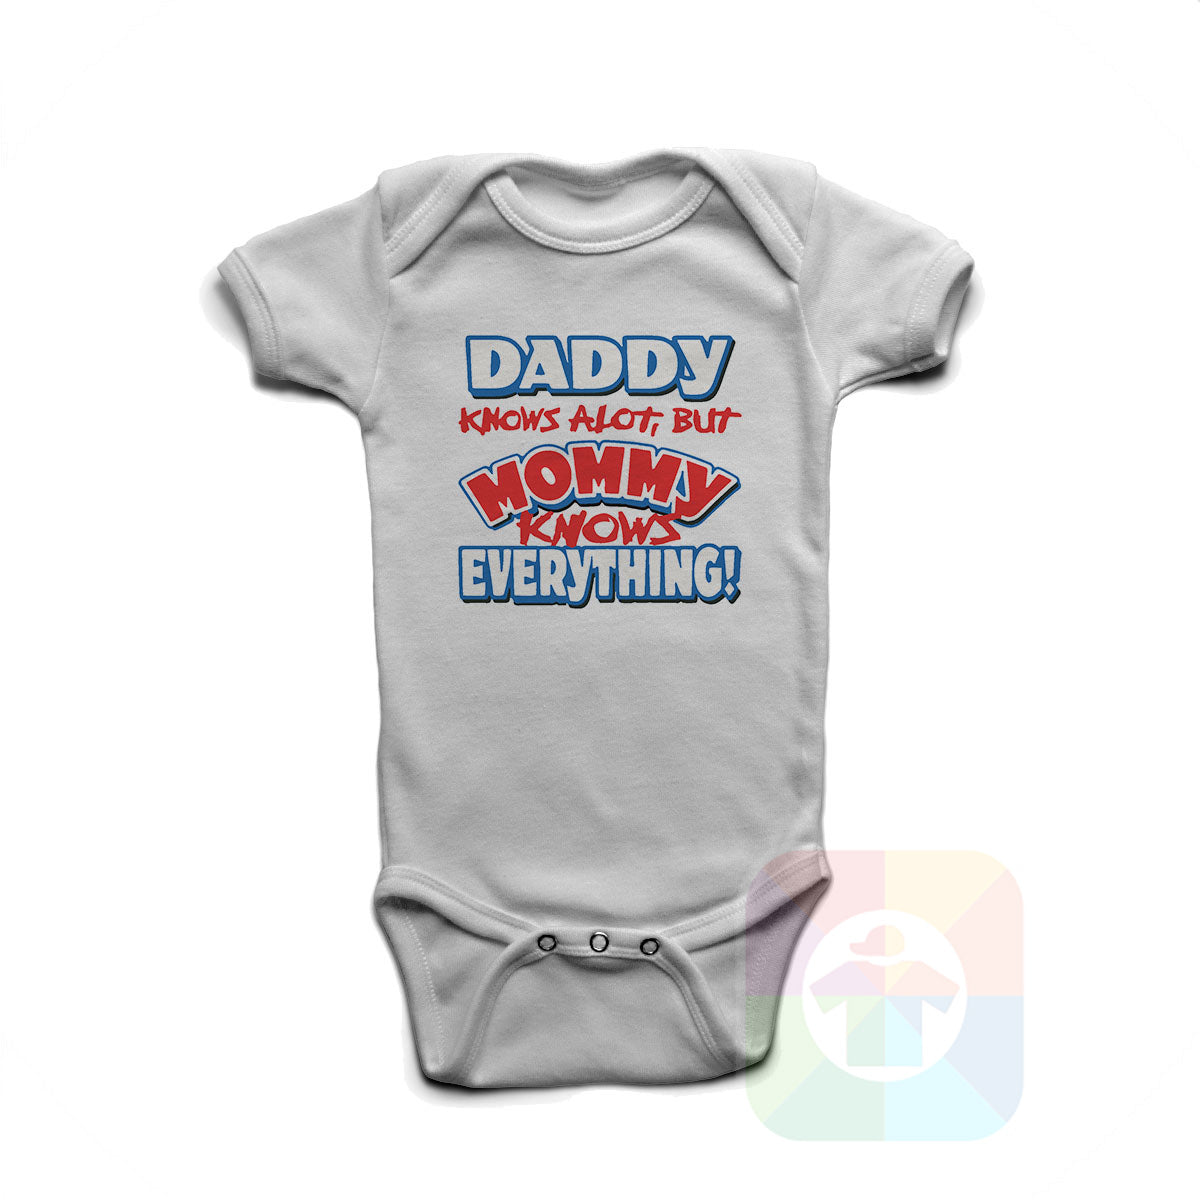 46e1bce3 Baby onesie 'DADDY KNOWS A LOT BUT MOMMY KNOWS EVERYTHING' kids funny  novelty design. #8060 / New Born, 6m, 12m, 24m Sizes